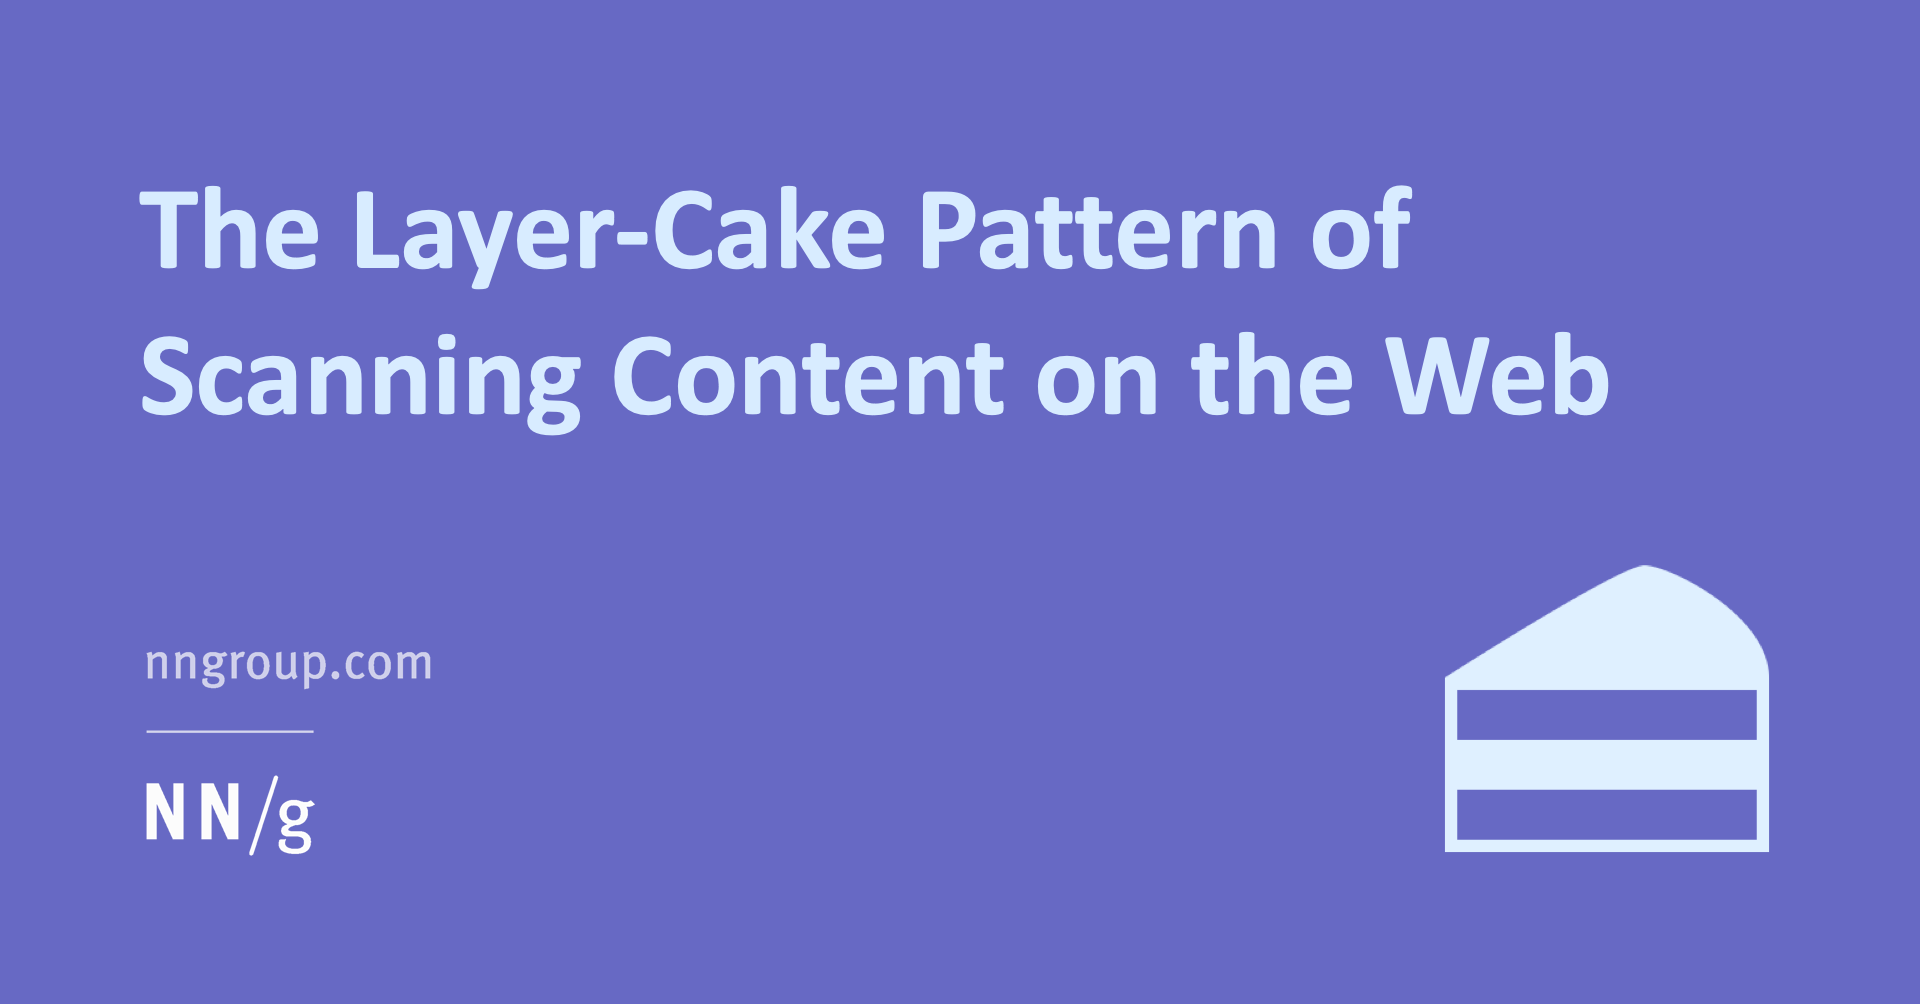 The Layer-Cake Pattern of Scanning Content on the Web